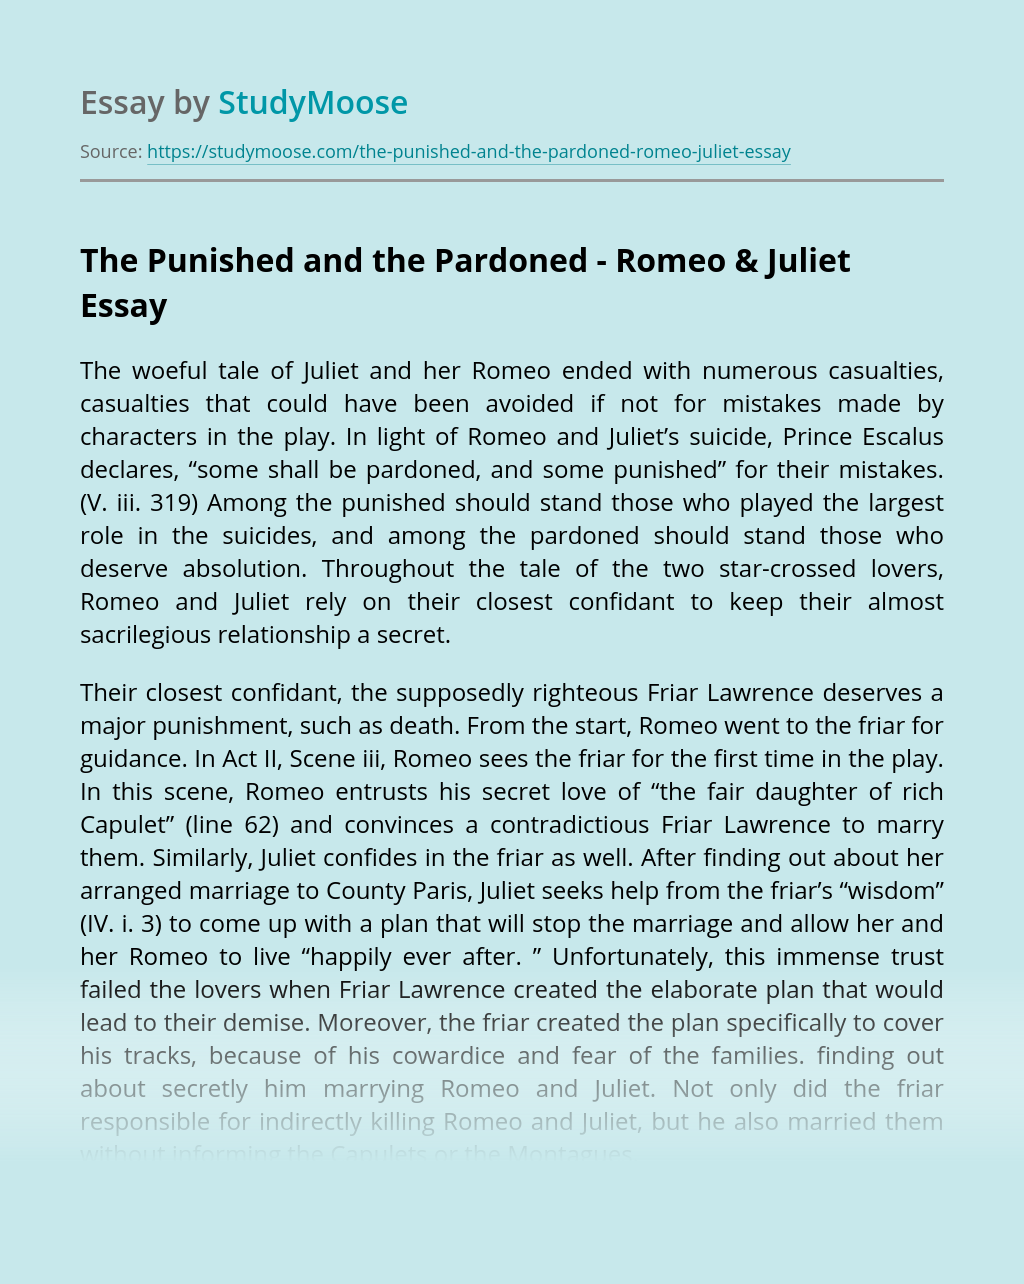 The Punished and the Pardoned – Romeo & Juliet